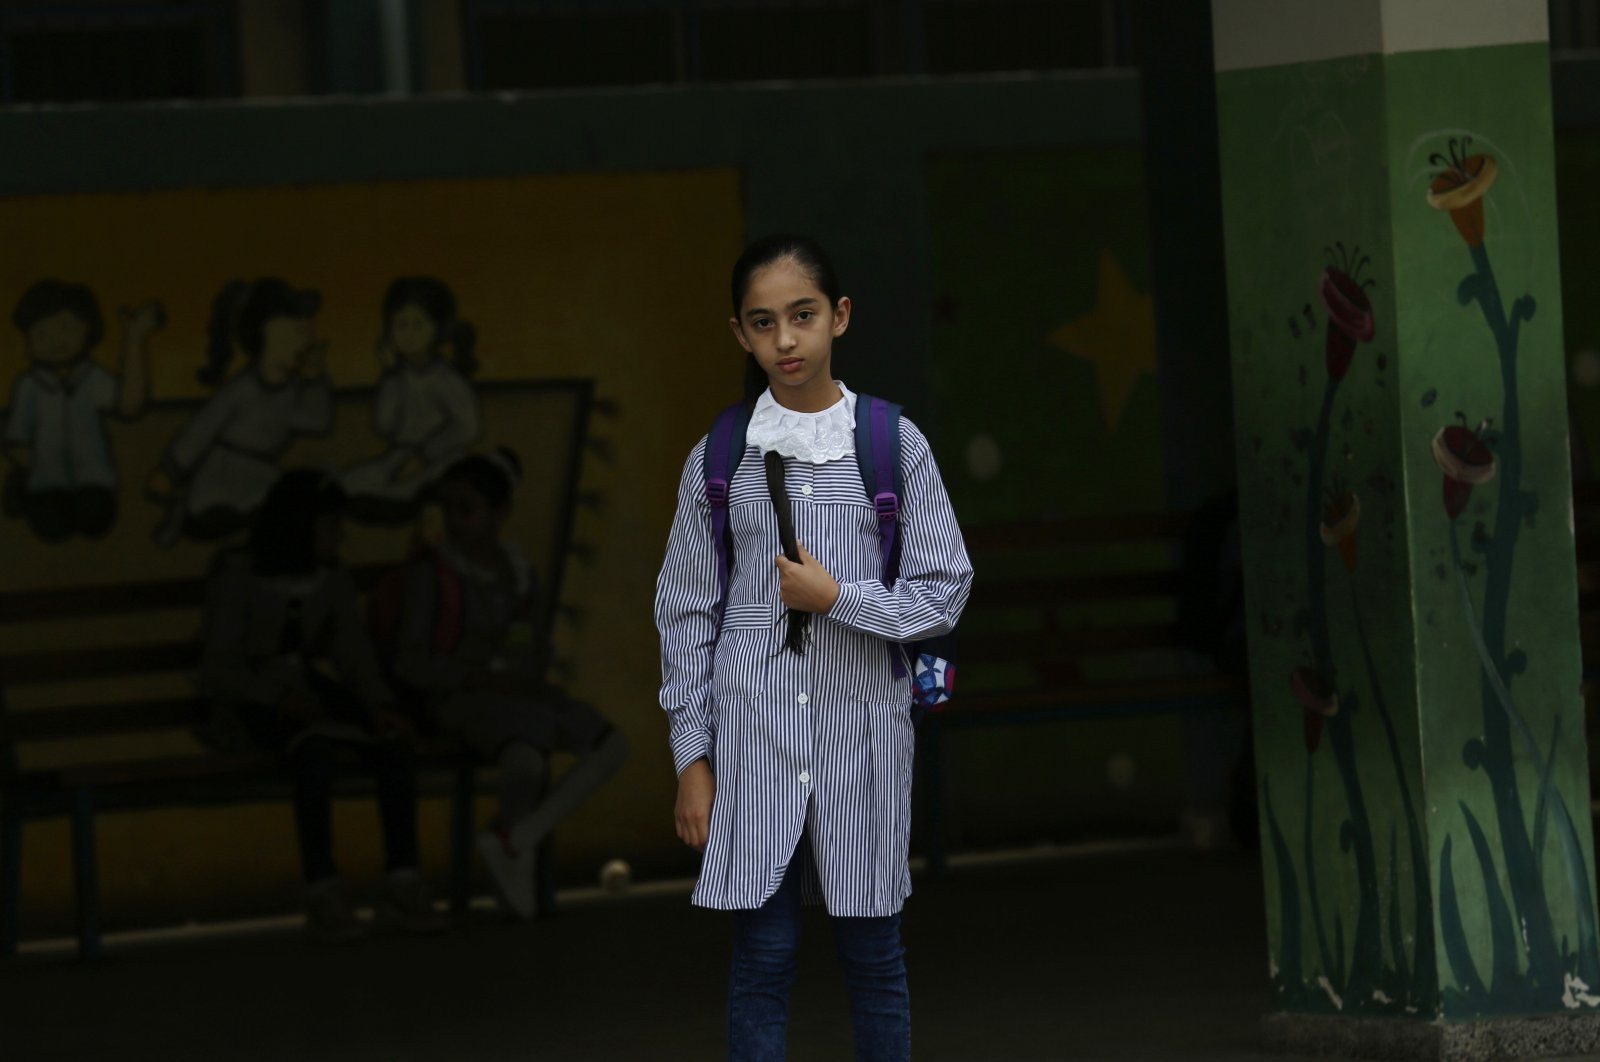 A student walks to class on the first day of the new school year at the United Nations-run elementary school at Shati refugee camp, Gaza City, Palestine, Aug. 8, 2020. (AP Photo)